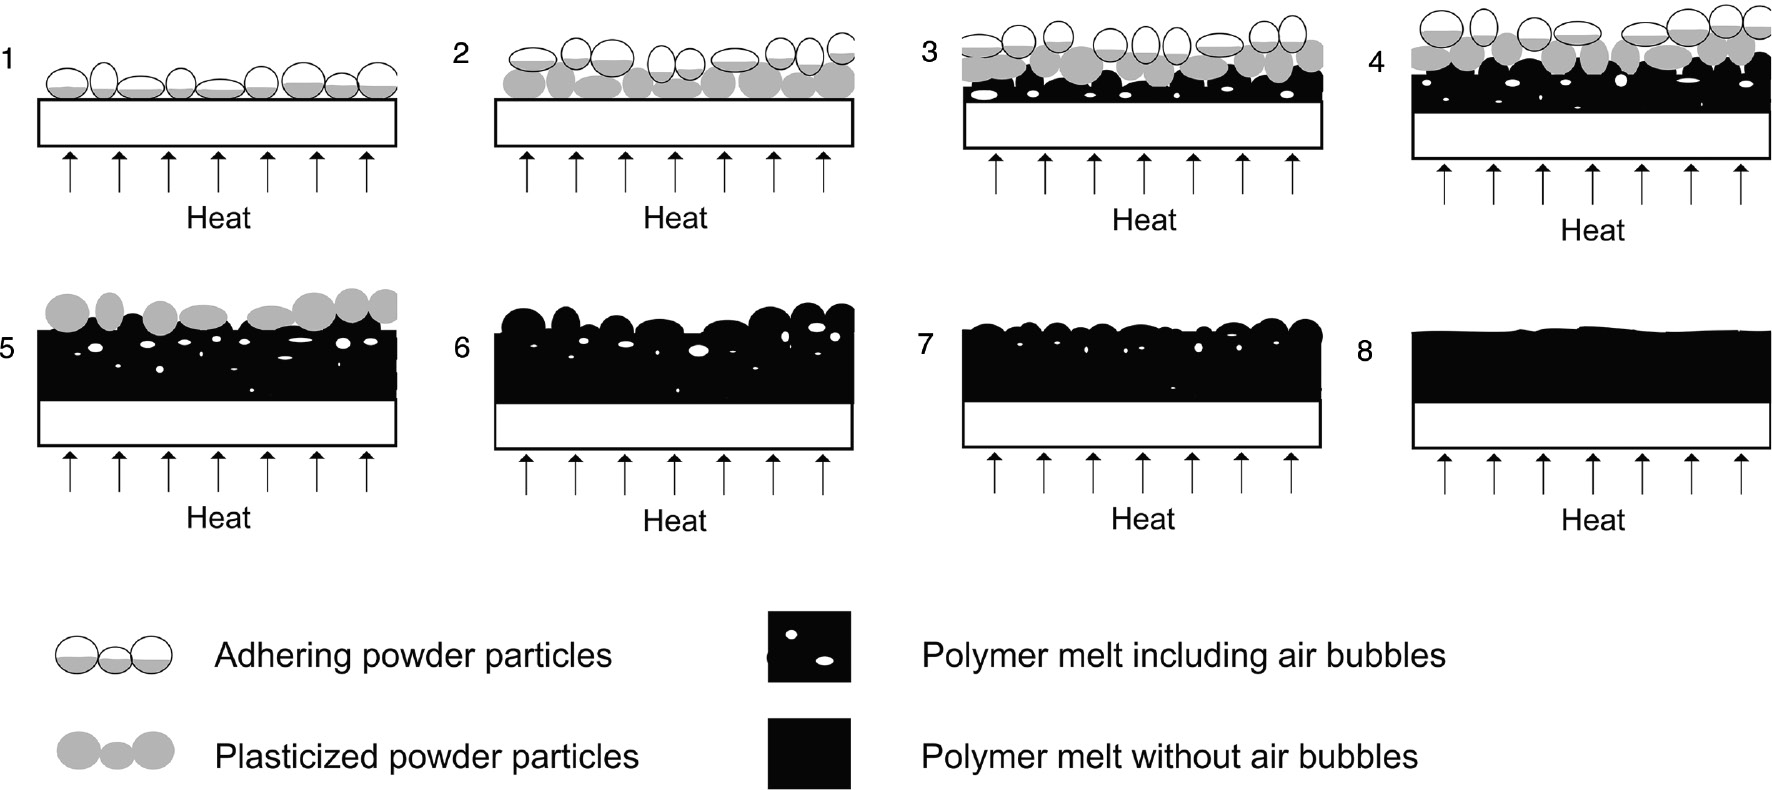 Characterization of layer built-up and inter-layer boundaries in rotational molding of multi-material parts in dependency of the filling strategy